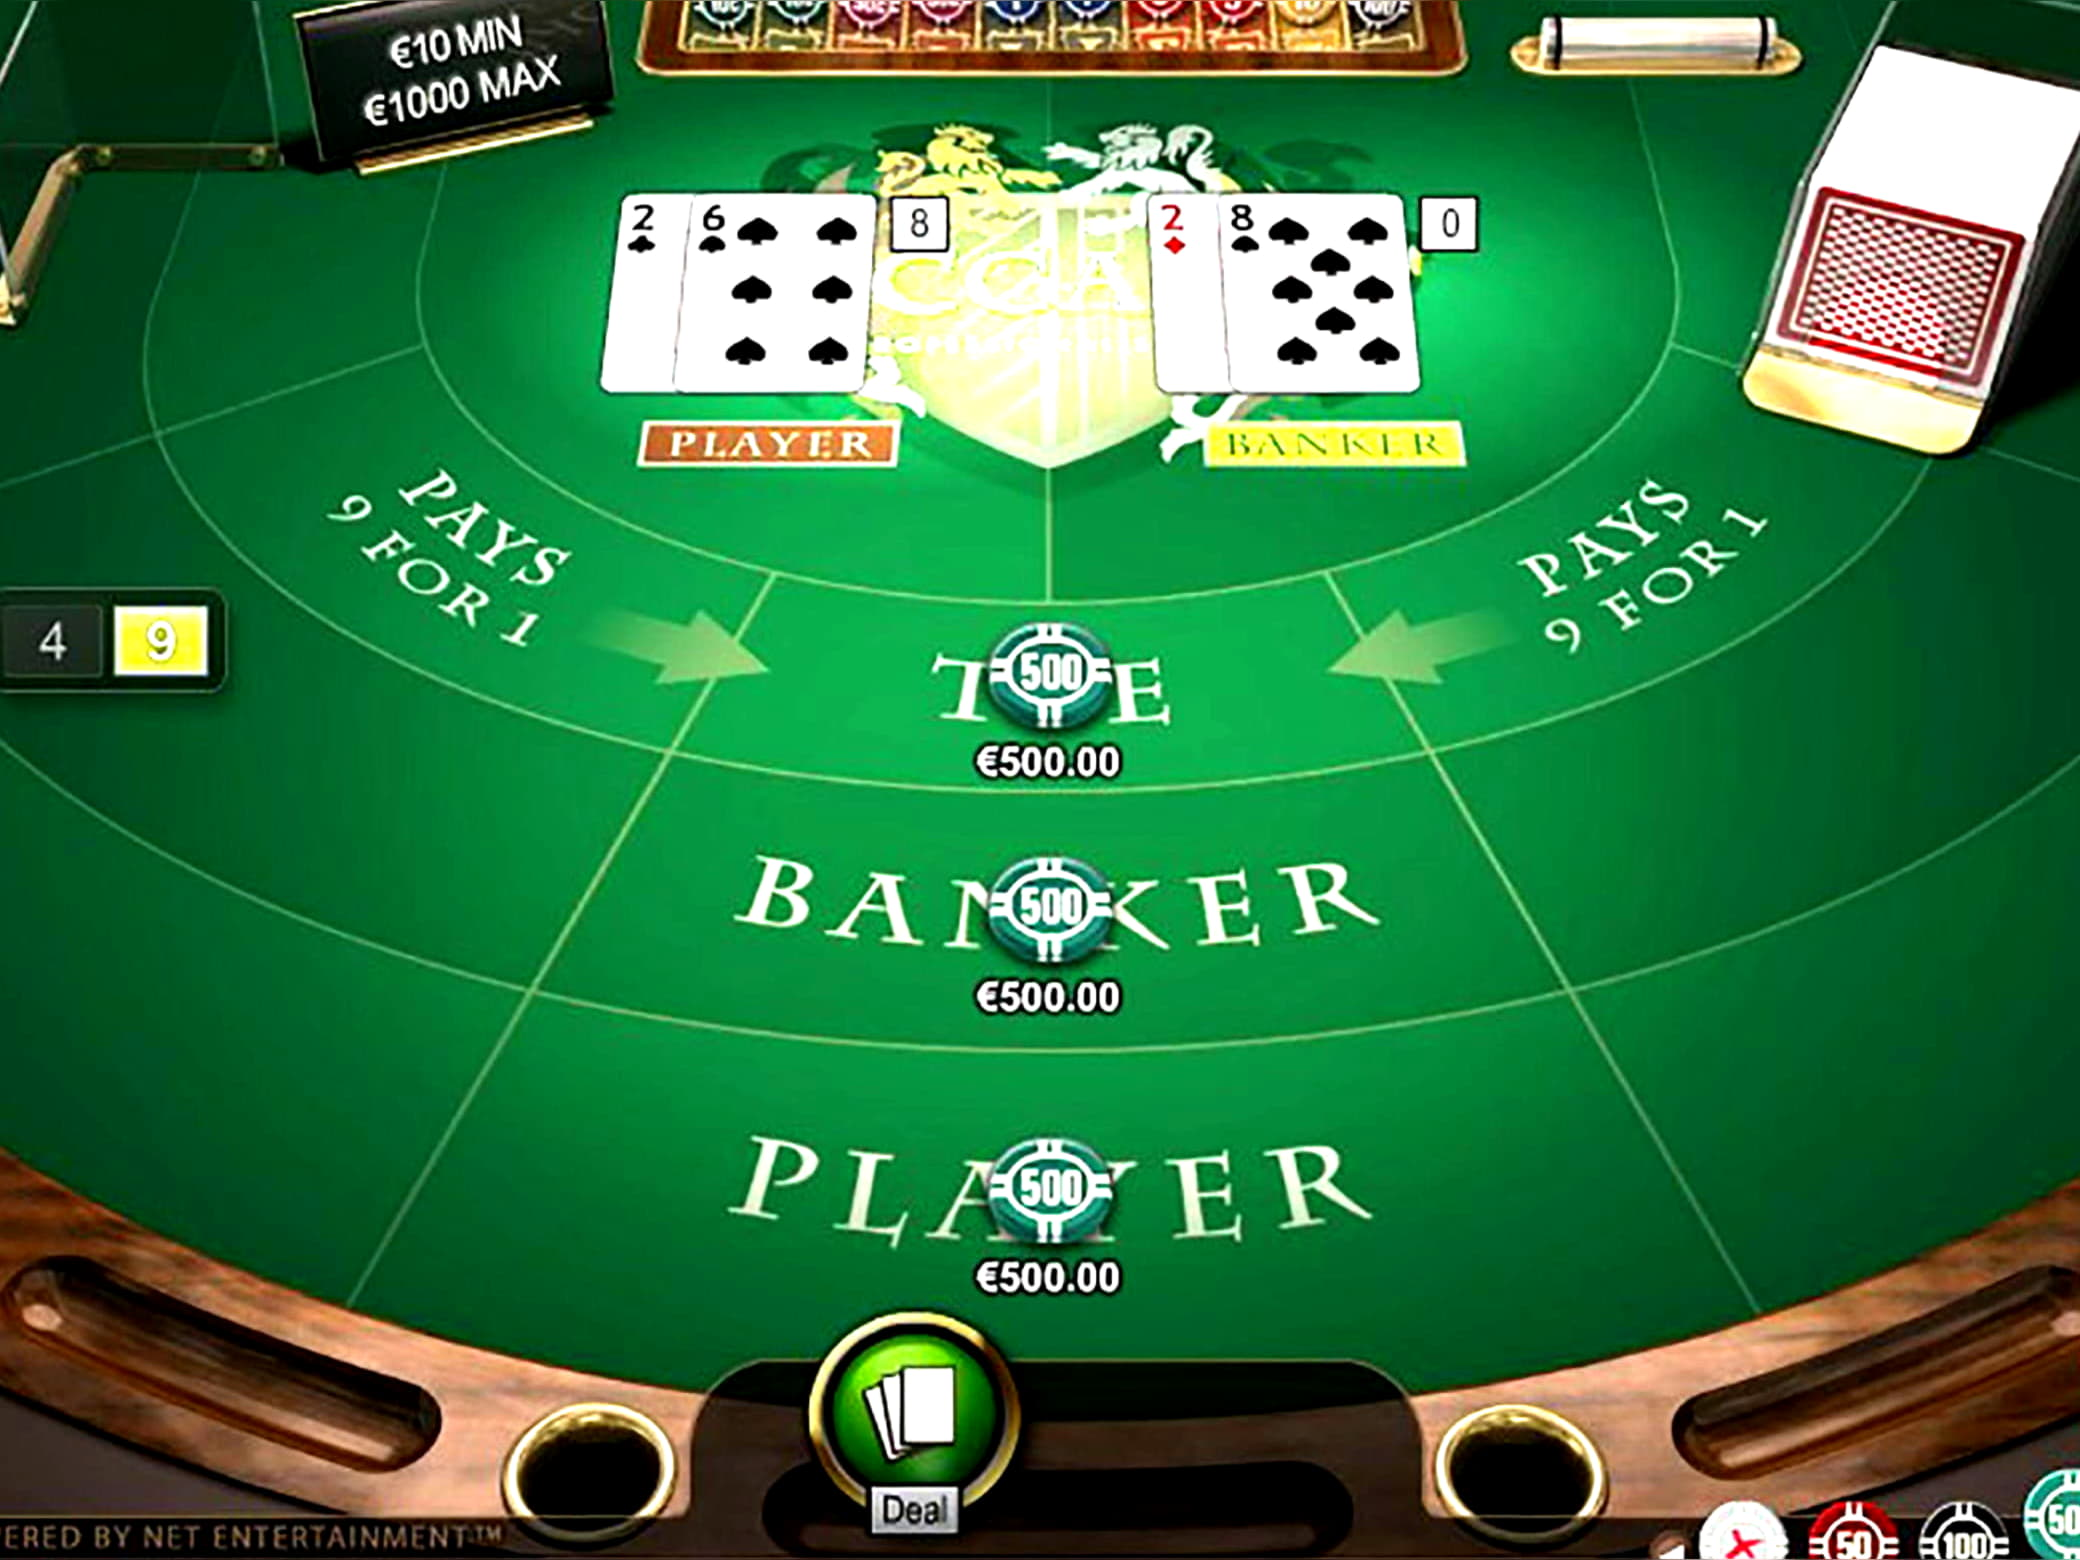 $675 Mobile freeroll slot tournament at Campo Bet Casino